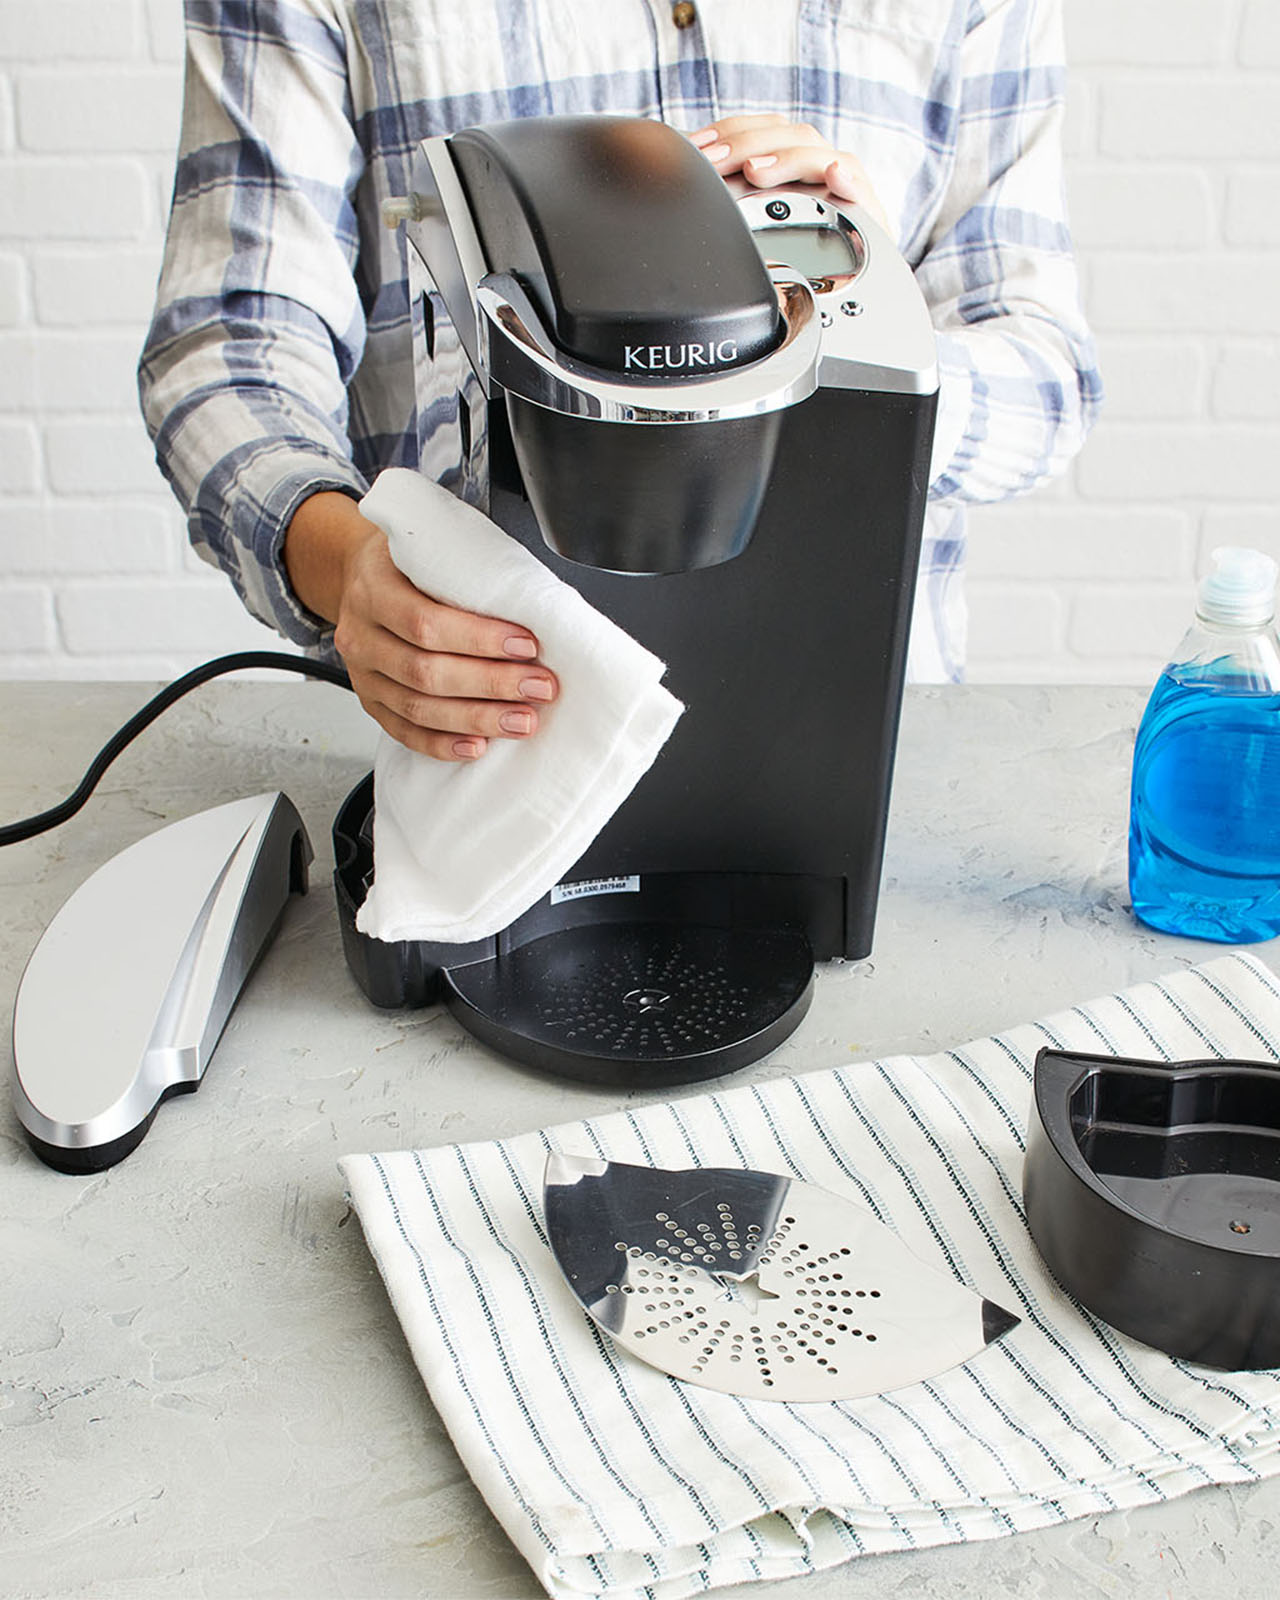 woman wearing plaid wiping down keurig with white towel